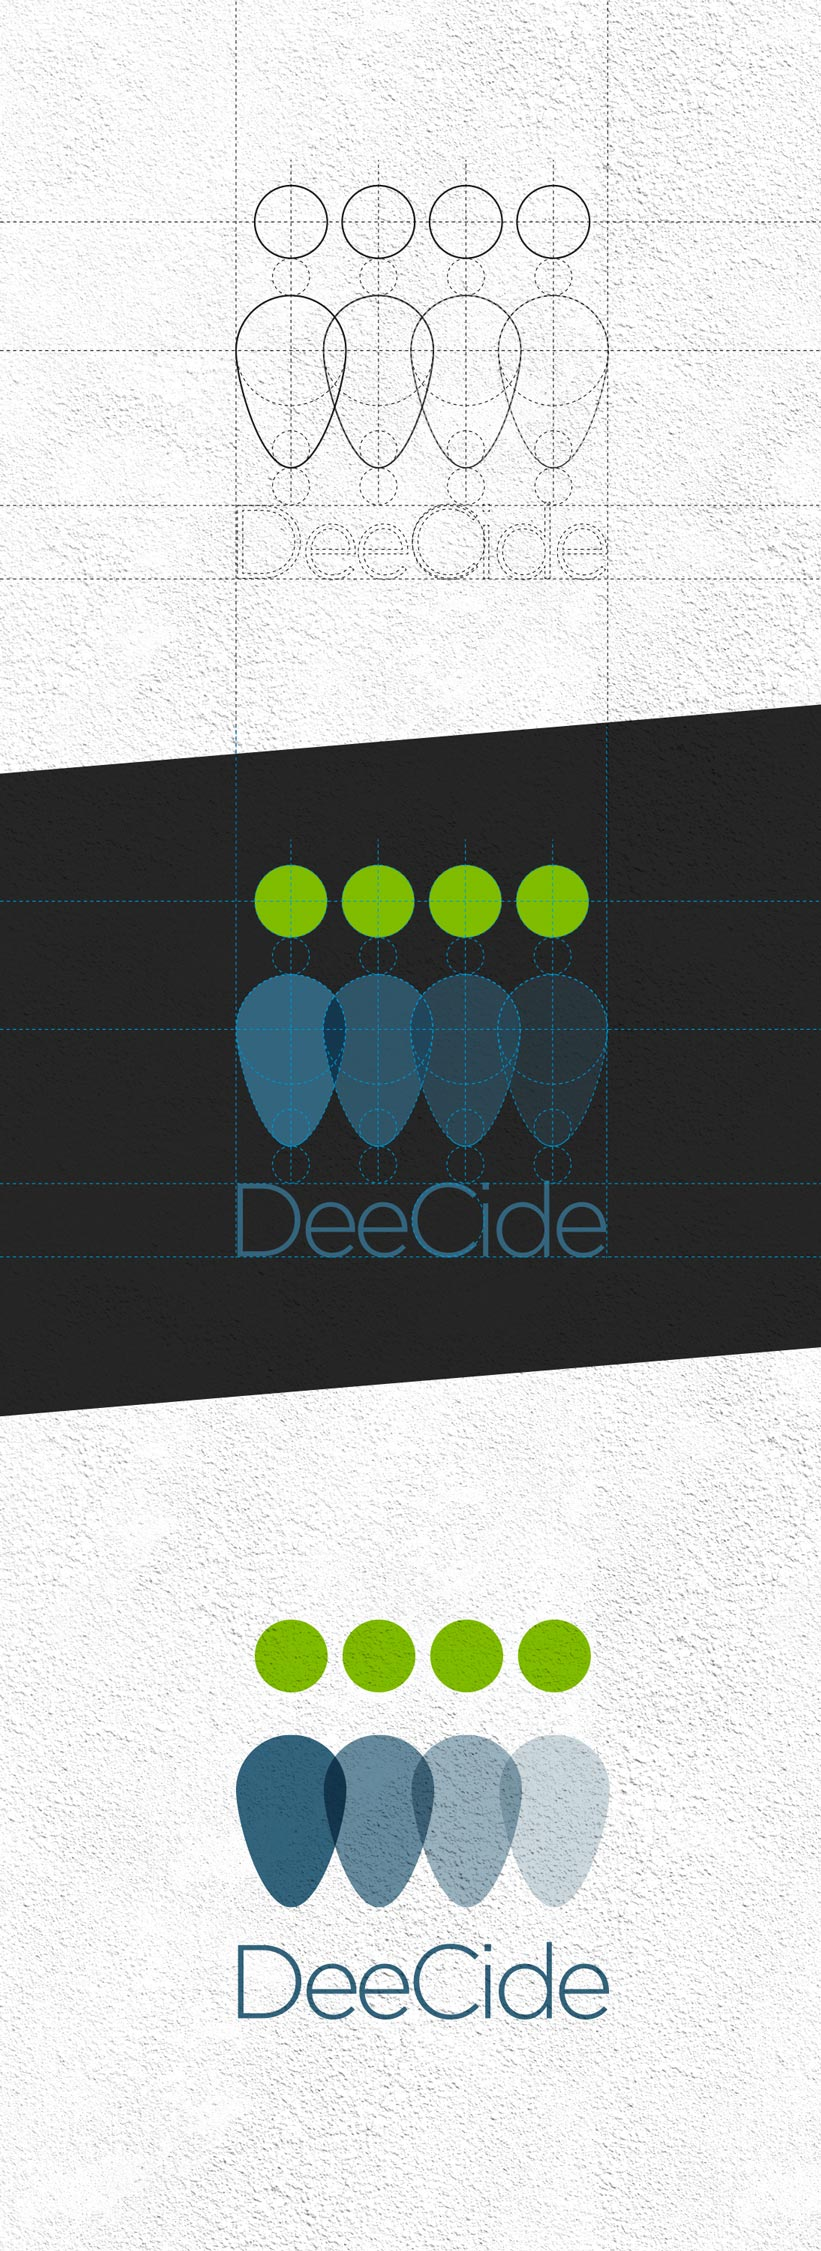 DeeCide-Steps-white-wall-bck